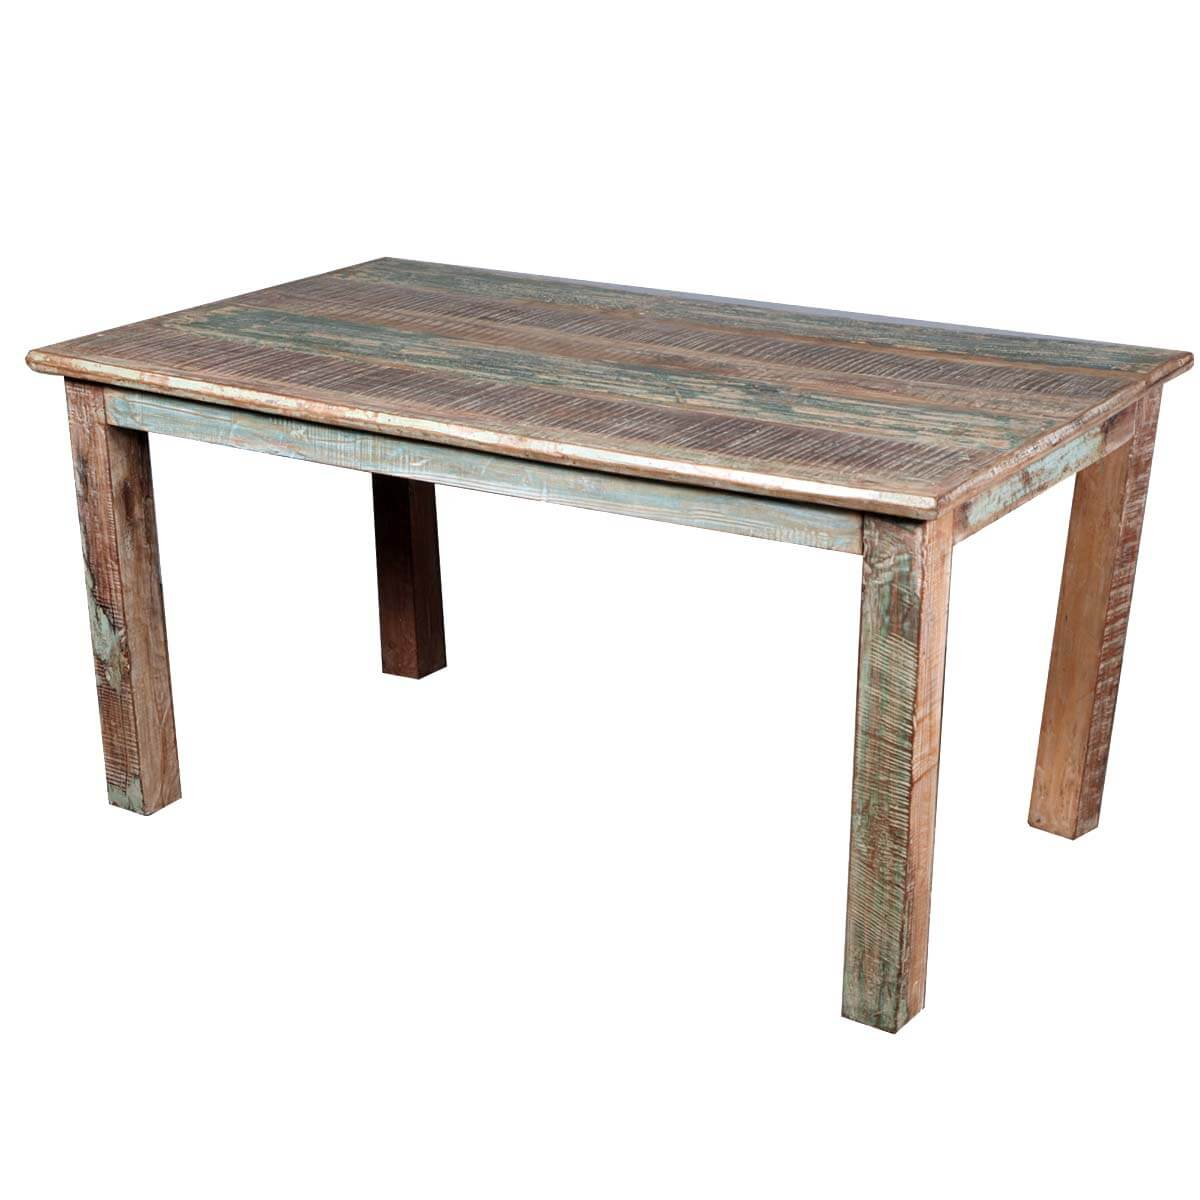 Rustic Reclaimed Wood Distressed Kitchen Dining Table : 44352 from sierralivingconcepts.com size 1200 x 1200 jpeg 105kB